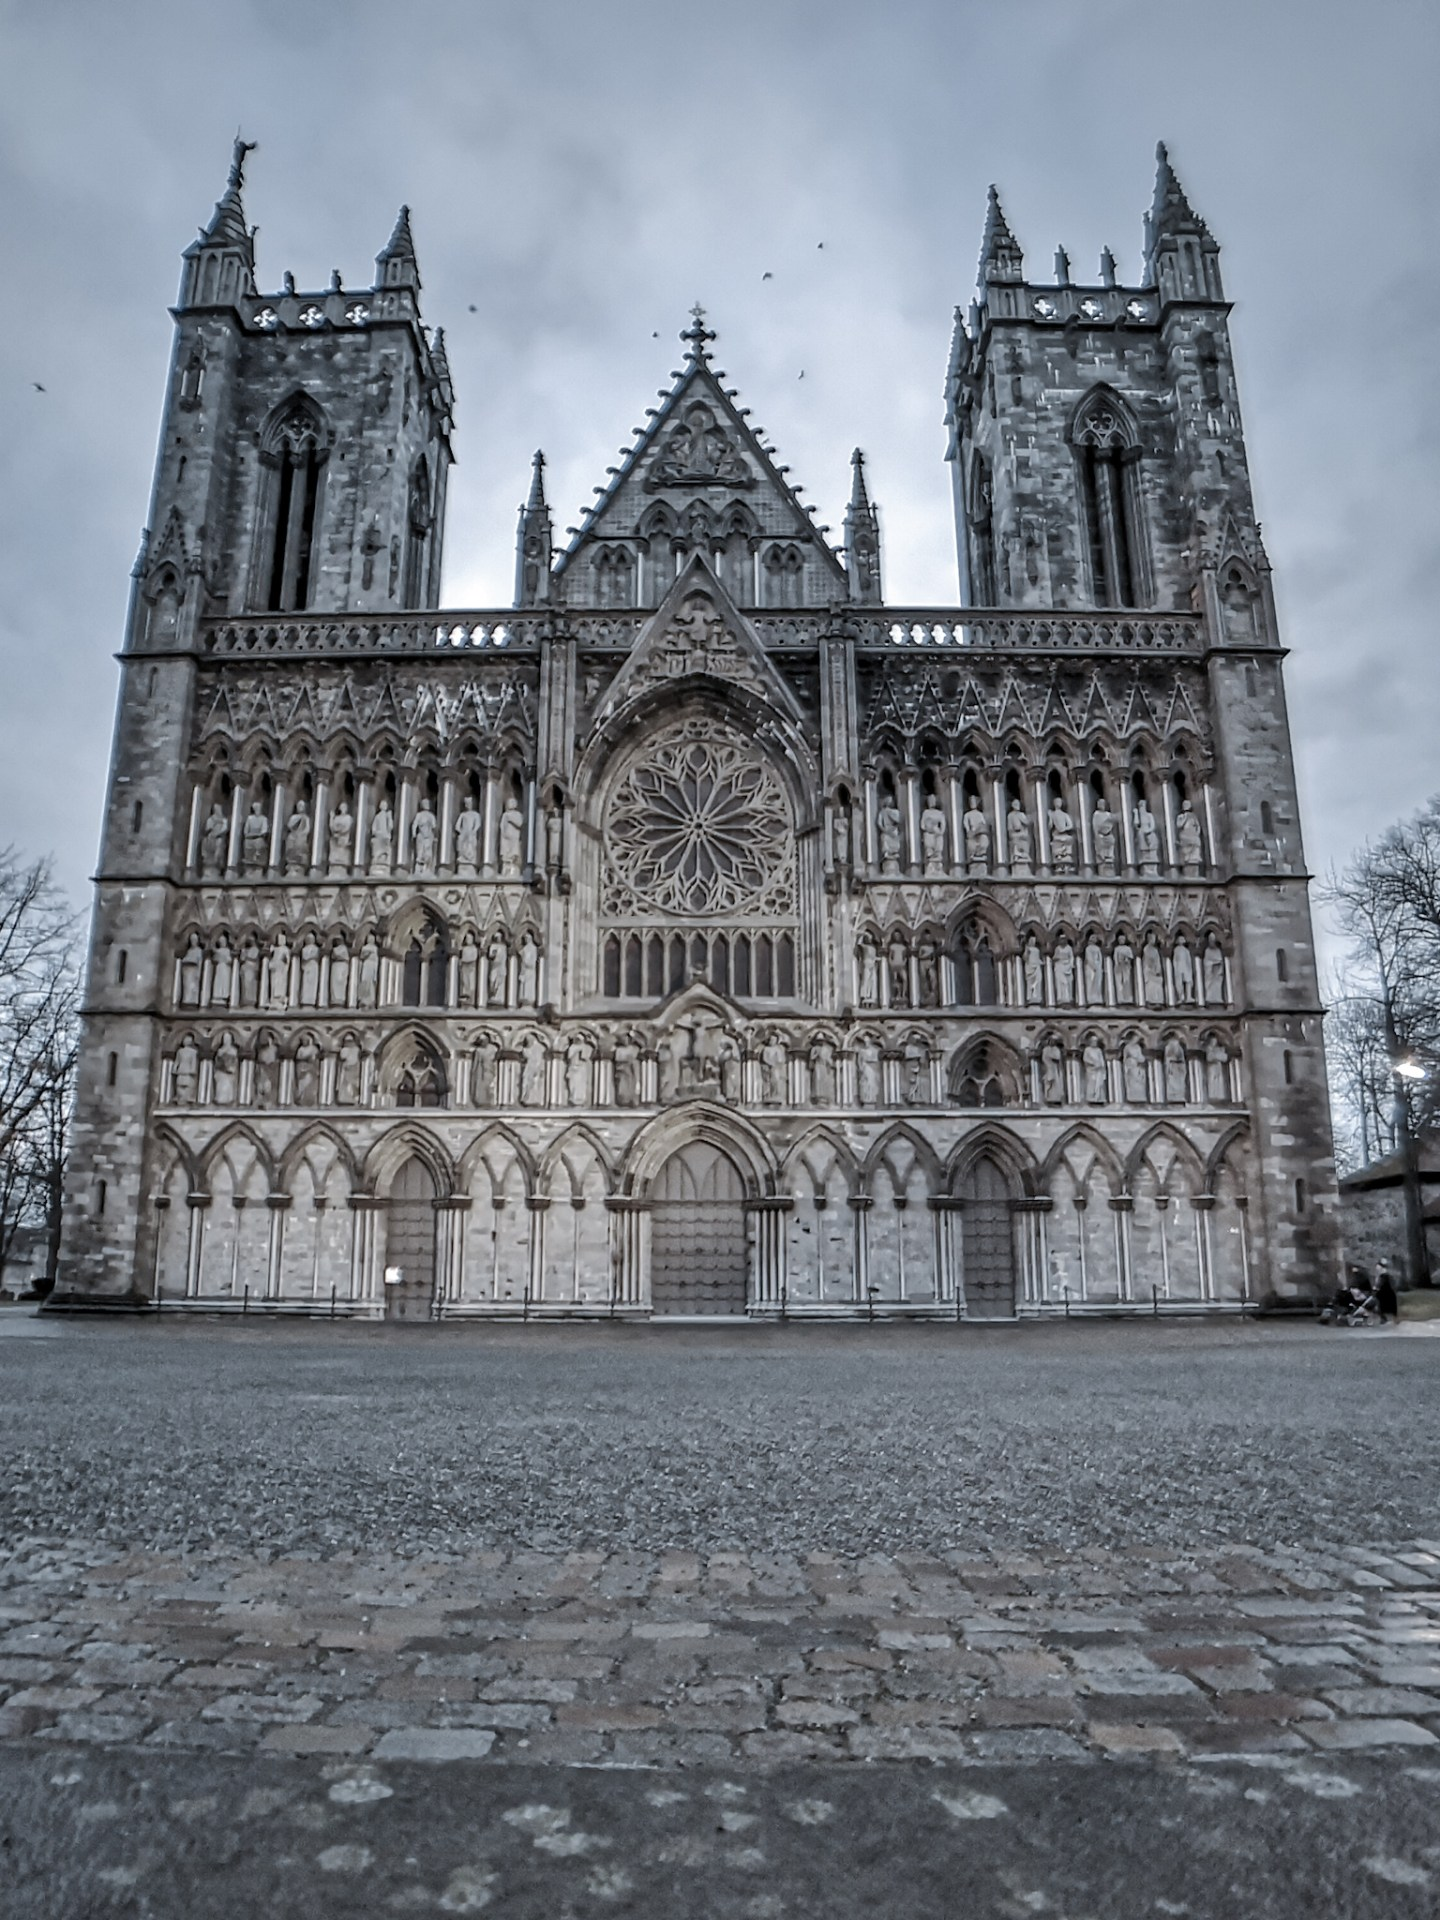 the magnificent cathedral Nidarosdomen